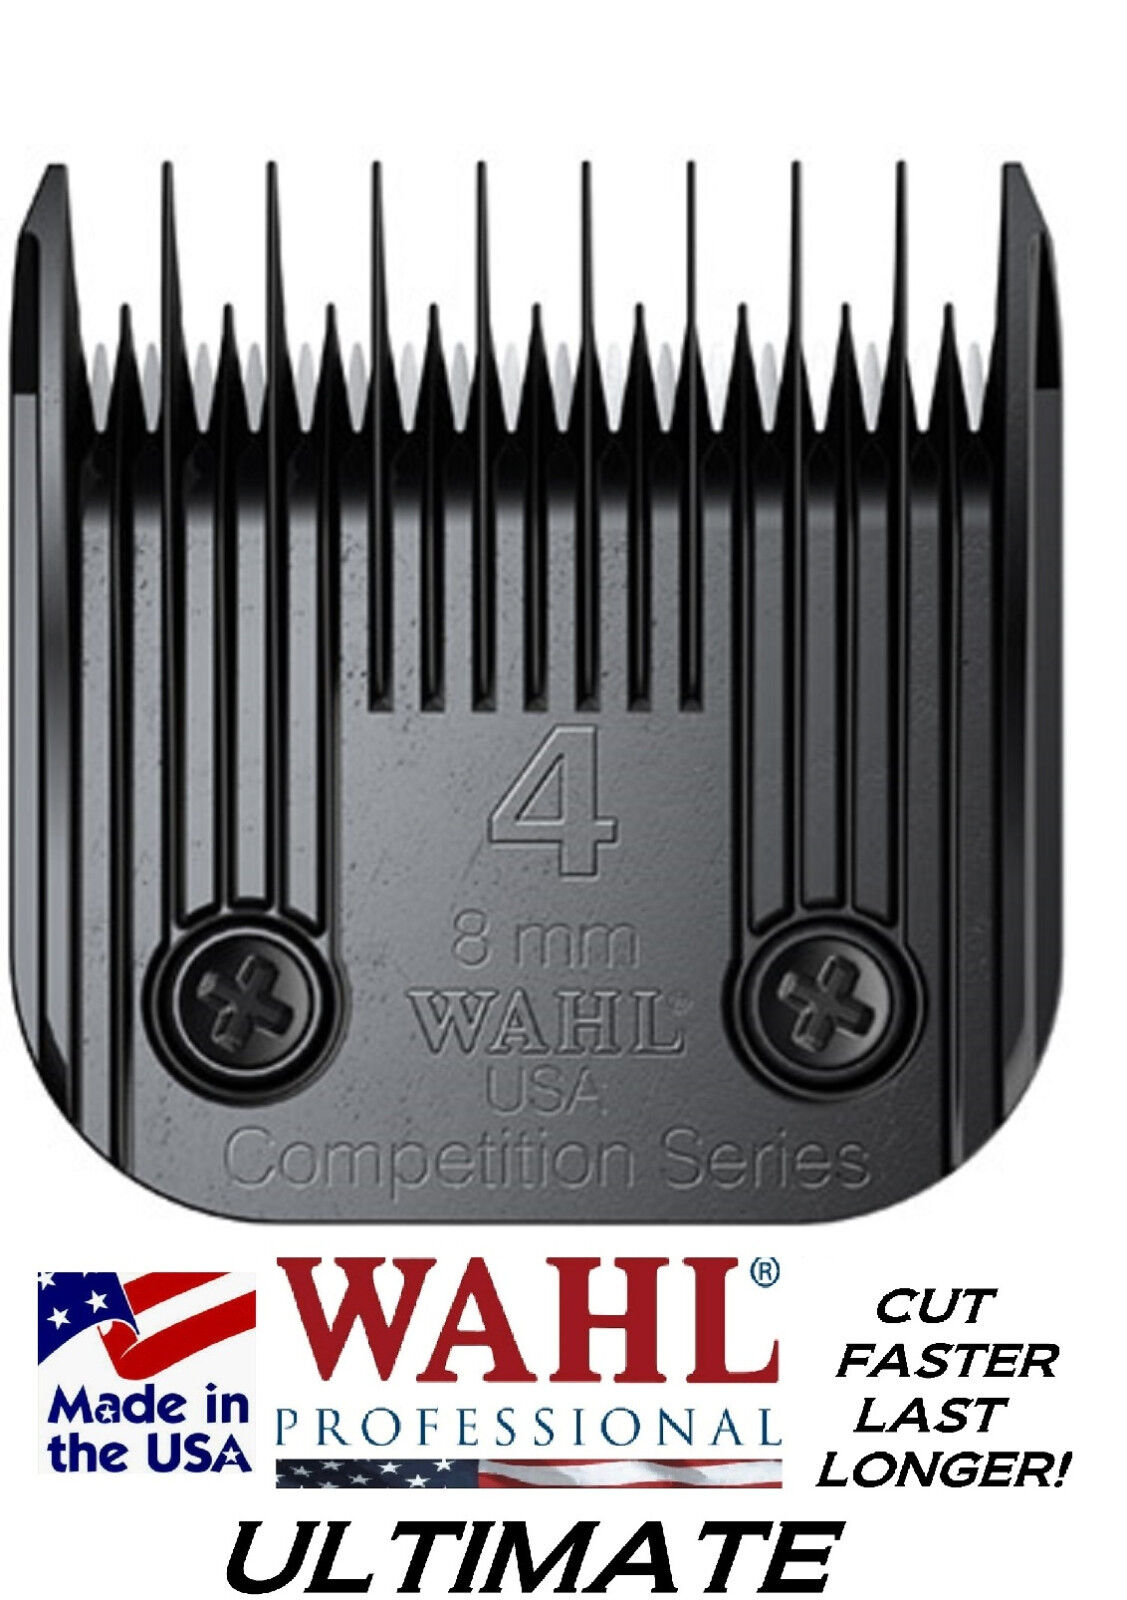 Wahl ULTIMATE COMPETITION Series A5 A5 A5 Clipper 4 Skip 8mm 5 16 BLADECUTS 3xFASTER  f1a4e6